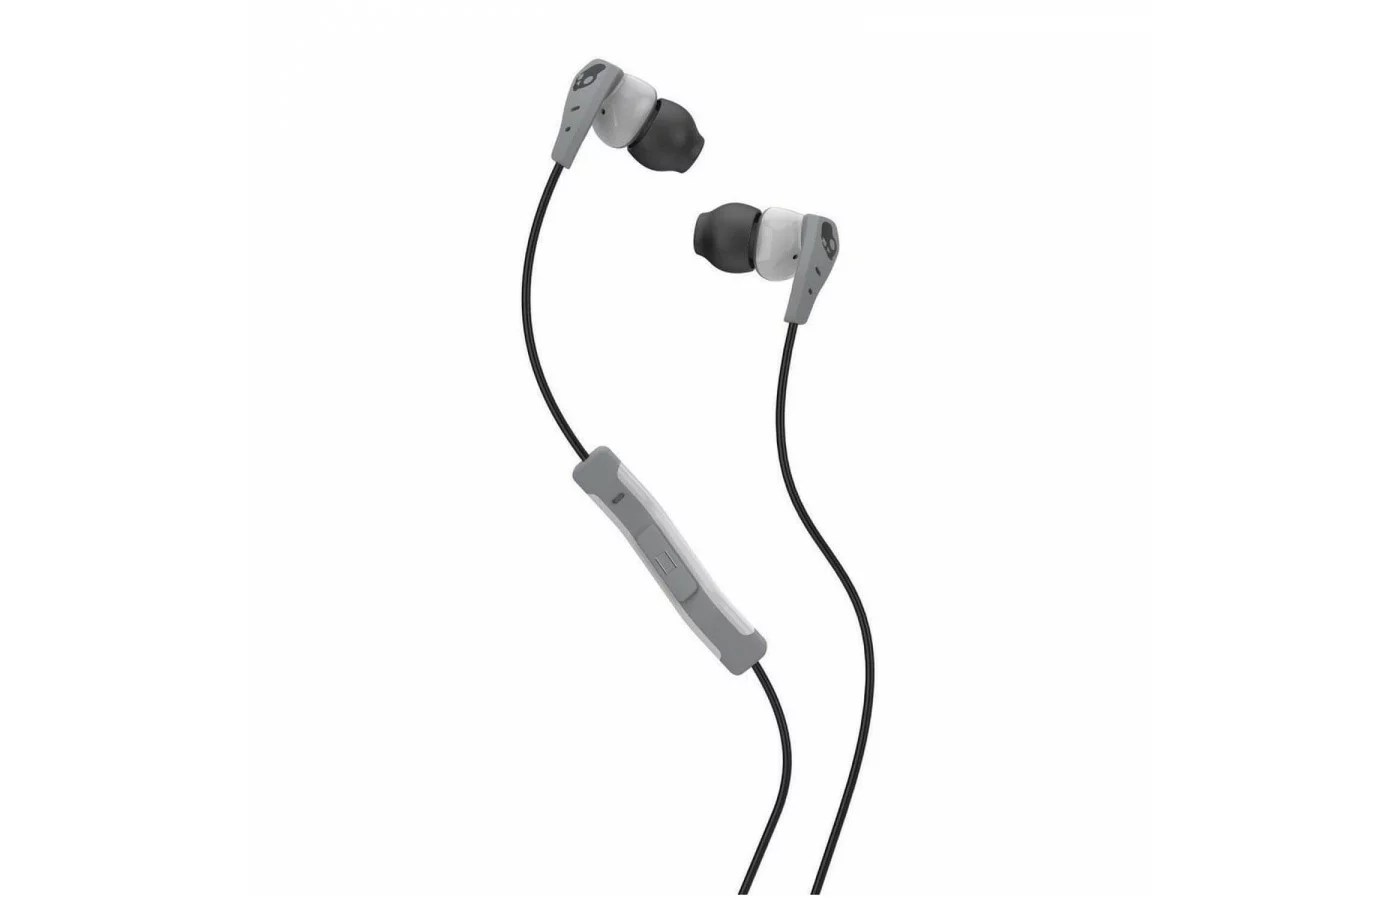 hight resolution of a full view of the skullcandy method